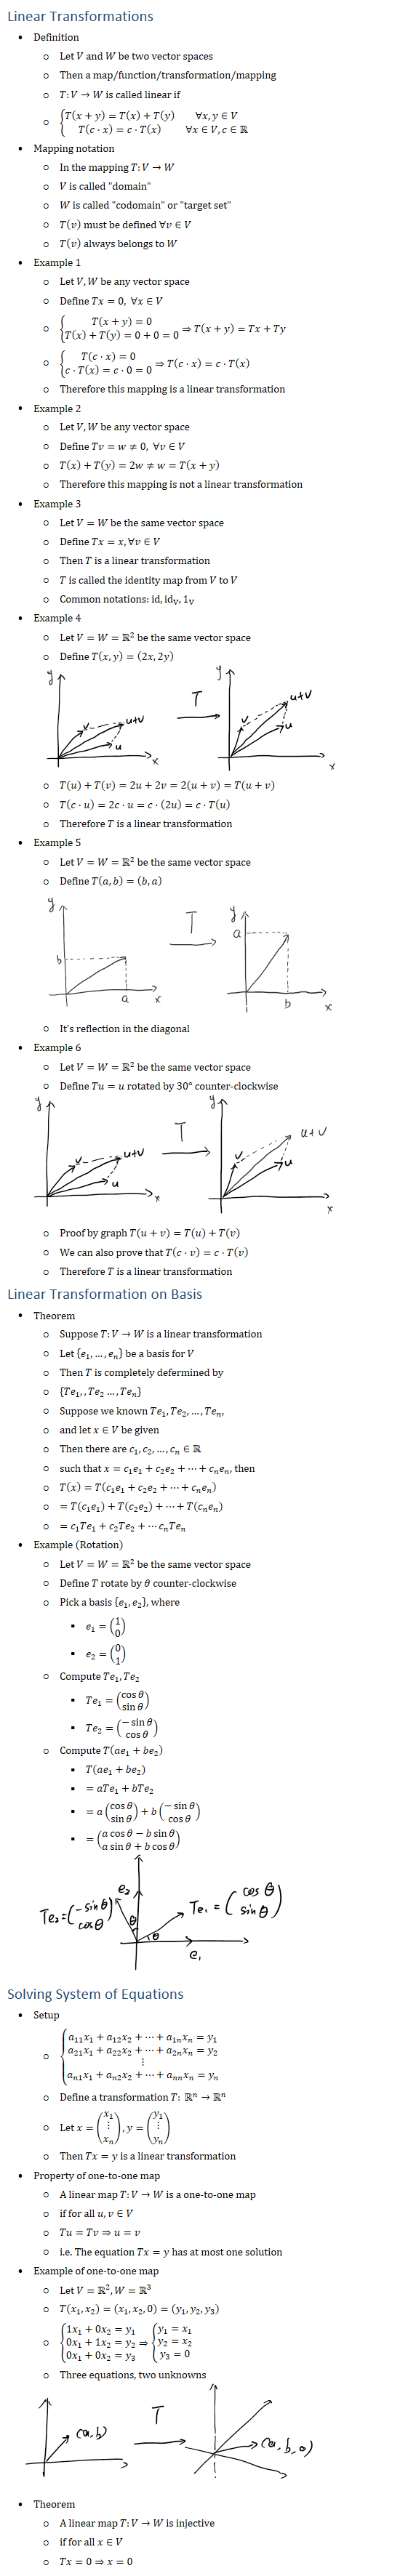 Linear Transformations • Definition ○ Let V and W be two vector spaces ○ Then a map/function/transformation/mapping ○ T:V→W is called linear if ○ {■8(T(x+y)=T(x)+T(y)&∀x,y∈V@T(c⋅x)=c⋅T(x)&∀x∈V,c∈R┤ • Mapping notation ○ In the mapping T:V→W ○ V is called domain ○ W is called codomain or target set ○ T(v) must be defined ∀v∈V ○ T(v) always belongs to W • Example 1 ○ Let V,W be any vector space ○ Define Tx=0, ∀x∈V ○ {█(T(x+y)=0@T(x)+T(y)=0+0=0)┤⇒T(x+y)=Tx+Ty ○ {█(T(c⋅x)=0@c⋅T(x)=c⋅0=0)┤⇒T(c⋅x)=c⋅T(x) ○ Therefore this mapping is a linear transformation • Example 2 ○ Let V,W be any vector space ○ Define Tv=w≠0, ∀v∈V ○ T(x)+T(y)=2w≠w=T(x+y) ○ Therefore this mapping is not a linear transformation • Example 3 ○ Let V=W be the same vector space ○ Define Tx=x, ∀v∈V ○ Then T is a linear transformation ○ T is called the identity map from V to V ○ Common notations: id, id_V, 1_V • Example 4 ○ Let V=W=R2 be the same vector space ○ Define T(x,y)=(2x,2y) ○ T(u)+T(v)=2u+2v=2(u+v)=T(u+v) ○ T(c⋅u)=2c⋅u=c⋅(2u)=c⋅T(u) ○ Therefore T is a linear transformation • Example 5 ○ Let V=W=R2 be the same vector space ○ Define T(a,b)=(b,a) ○ It s reflection in the diagonal • Example 6 ○ Let V=W=R2 be the same vector space ○ Define Tu=u rotated by 30° counter-clockwise ○ Proof by graph T(u+v)=T(u)+T(v) ○ We can also prove that T(c⋅v)=c⋅T(v) ○ Therefore T is a linear transformation Linear Transformation on Basis • Theorem ○ Suppose T:V→W is a linear transformation ○ Let {e_1,…,e_n } be a basis for V ○ Then T is completely defermined by ○ {Te_1,,Te_2…,Te_n } ○ Suppose we known Te_1,Te_2,…,Te_n, ○ and let x∈V be given ○ Then there are c_1,c_2,…,c_n∈R ○ such that x=c_1 e_1+c_2 e_2+…+c_n e_n, then ○ T(x)=T(c_1 e_1+c_2 e_2+…+c_n e_n ) ○ =T(c_1 e_1 )+T(c_2 e_2 )+…+T(c_n e_n ) ○ =c_1 Te_1+c_2 Te_2+…c_n Te_n • Example (Rotation) ○ Let V=W=R2 be the same vector space ○ Define T rotate by θ counter-clockwise ○ Pick a basis {e_1,e_2 }, where § e_1=(█(1@0)) § e_2=(█(0@1)) ○ Compute Te_1, Te_2 § Te_1=(█(cosθ@sin